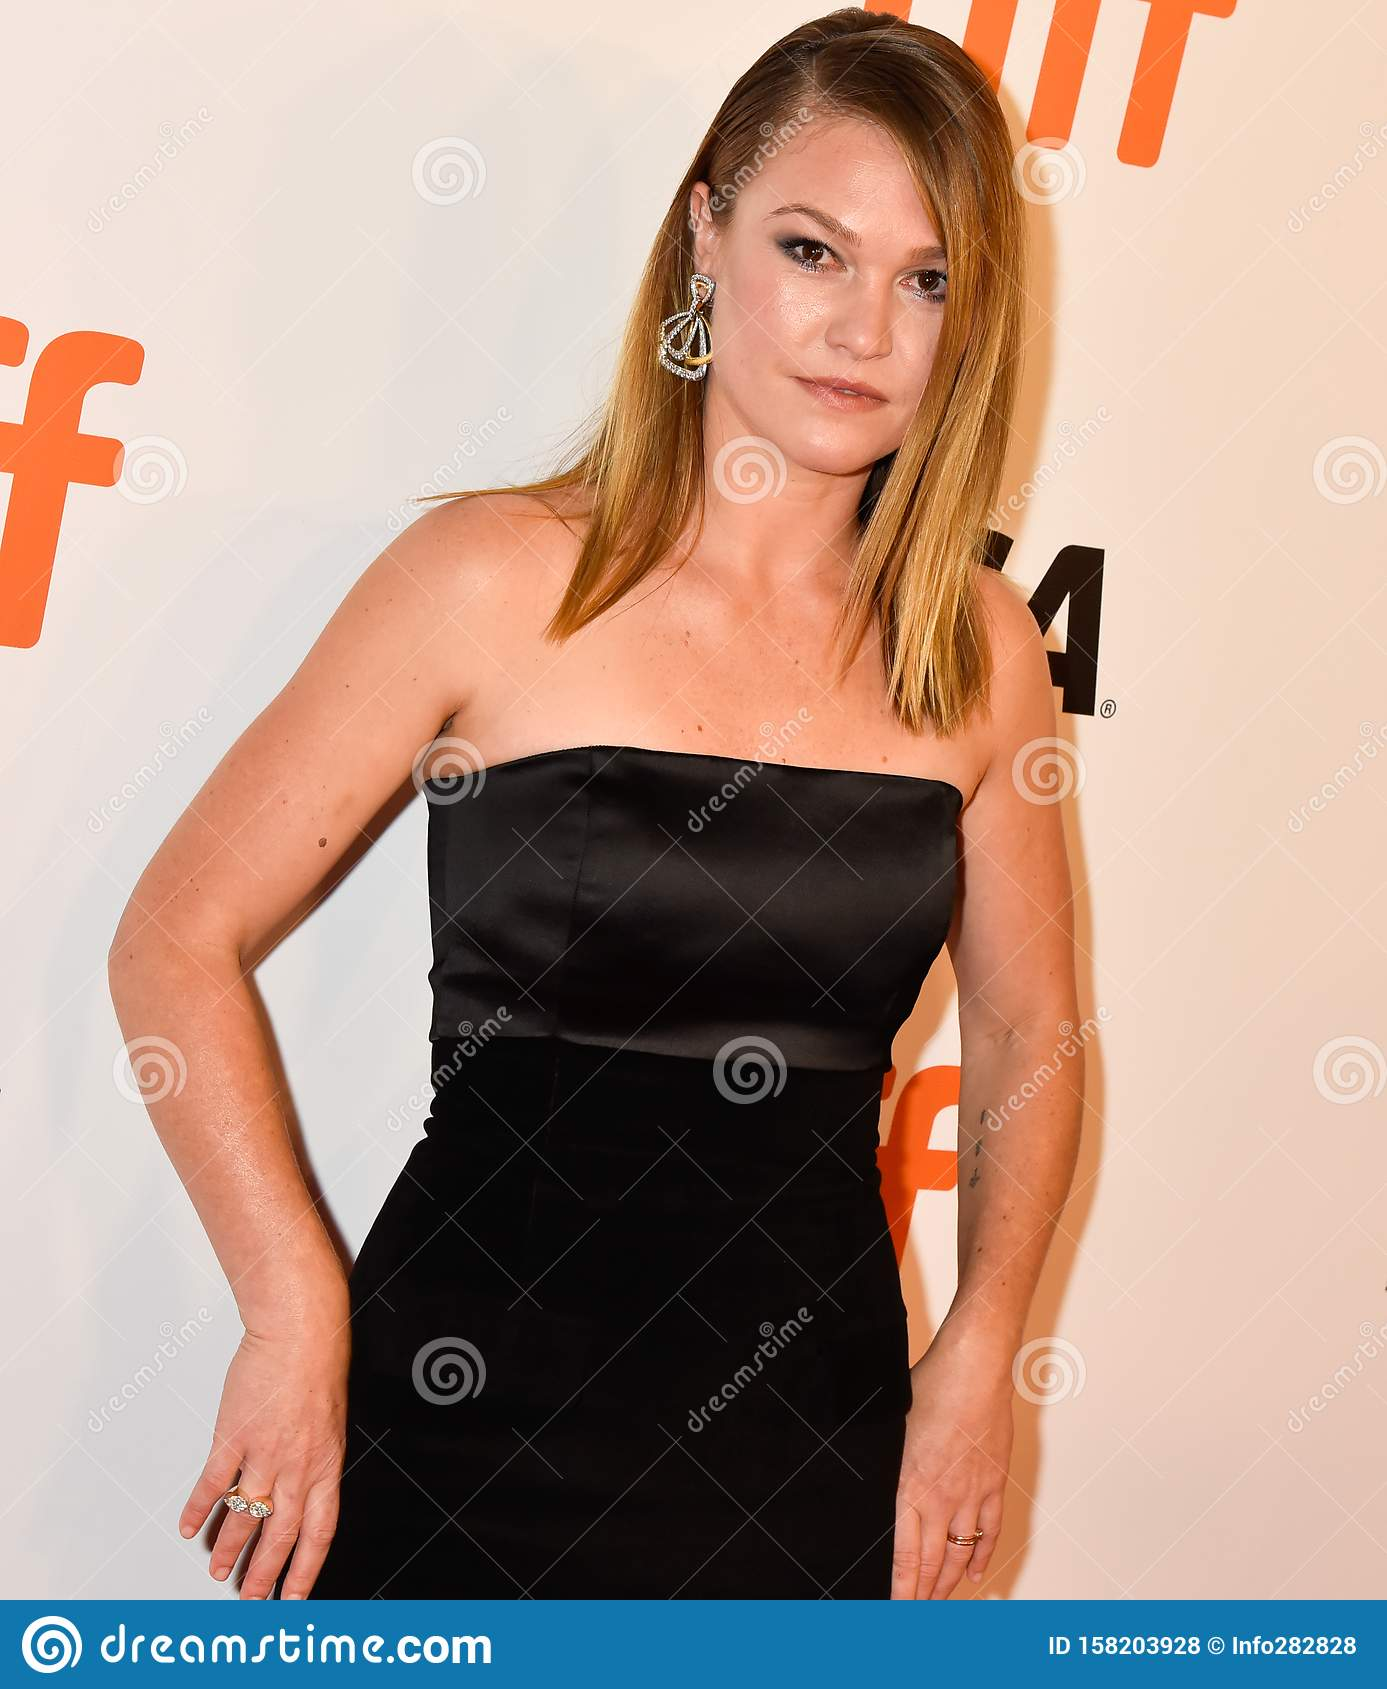 Actress Julia Stiles At Premiere Of Hustlers At Tiff2019